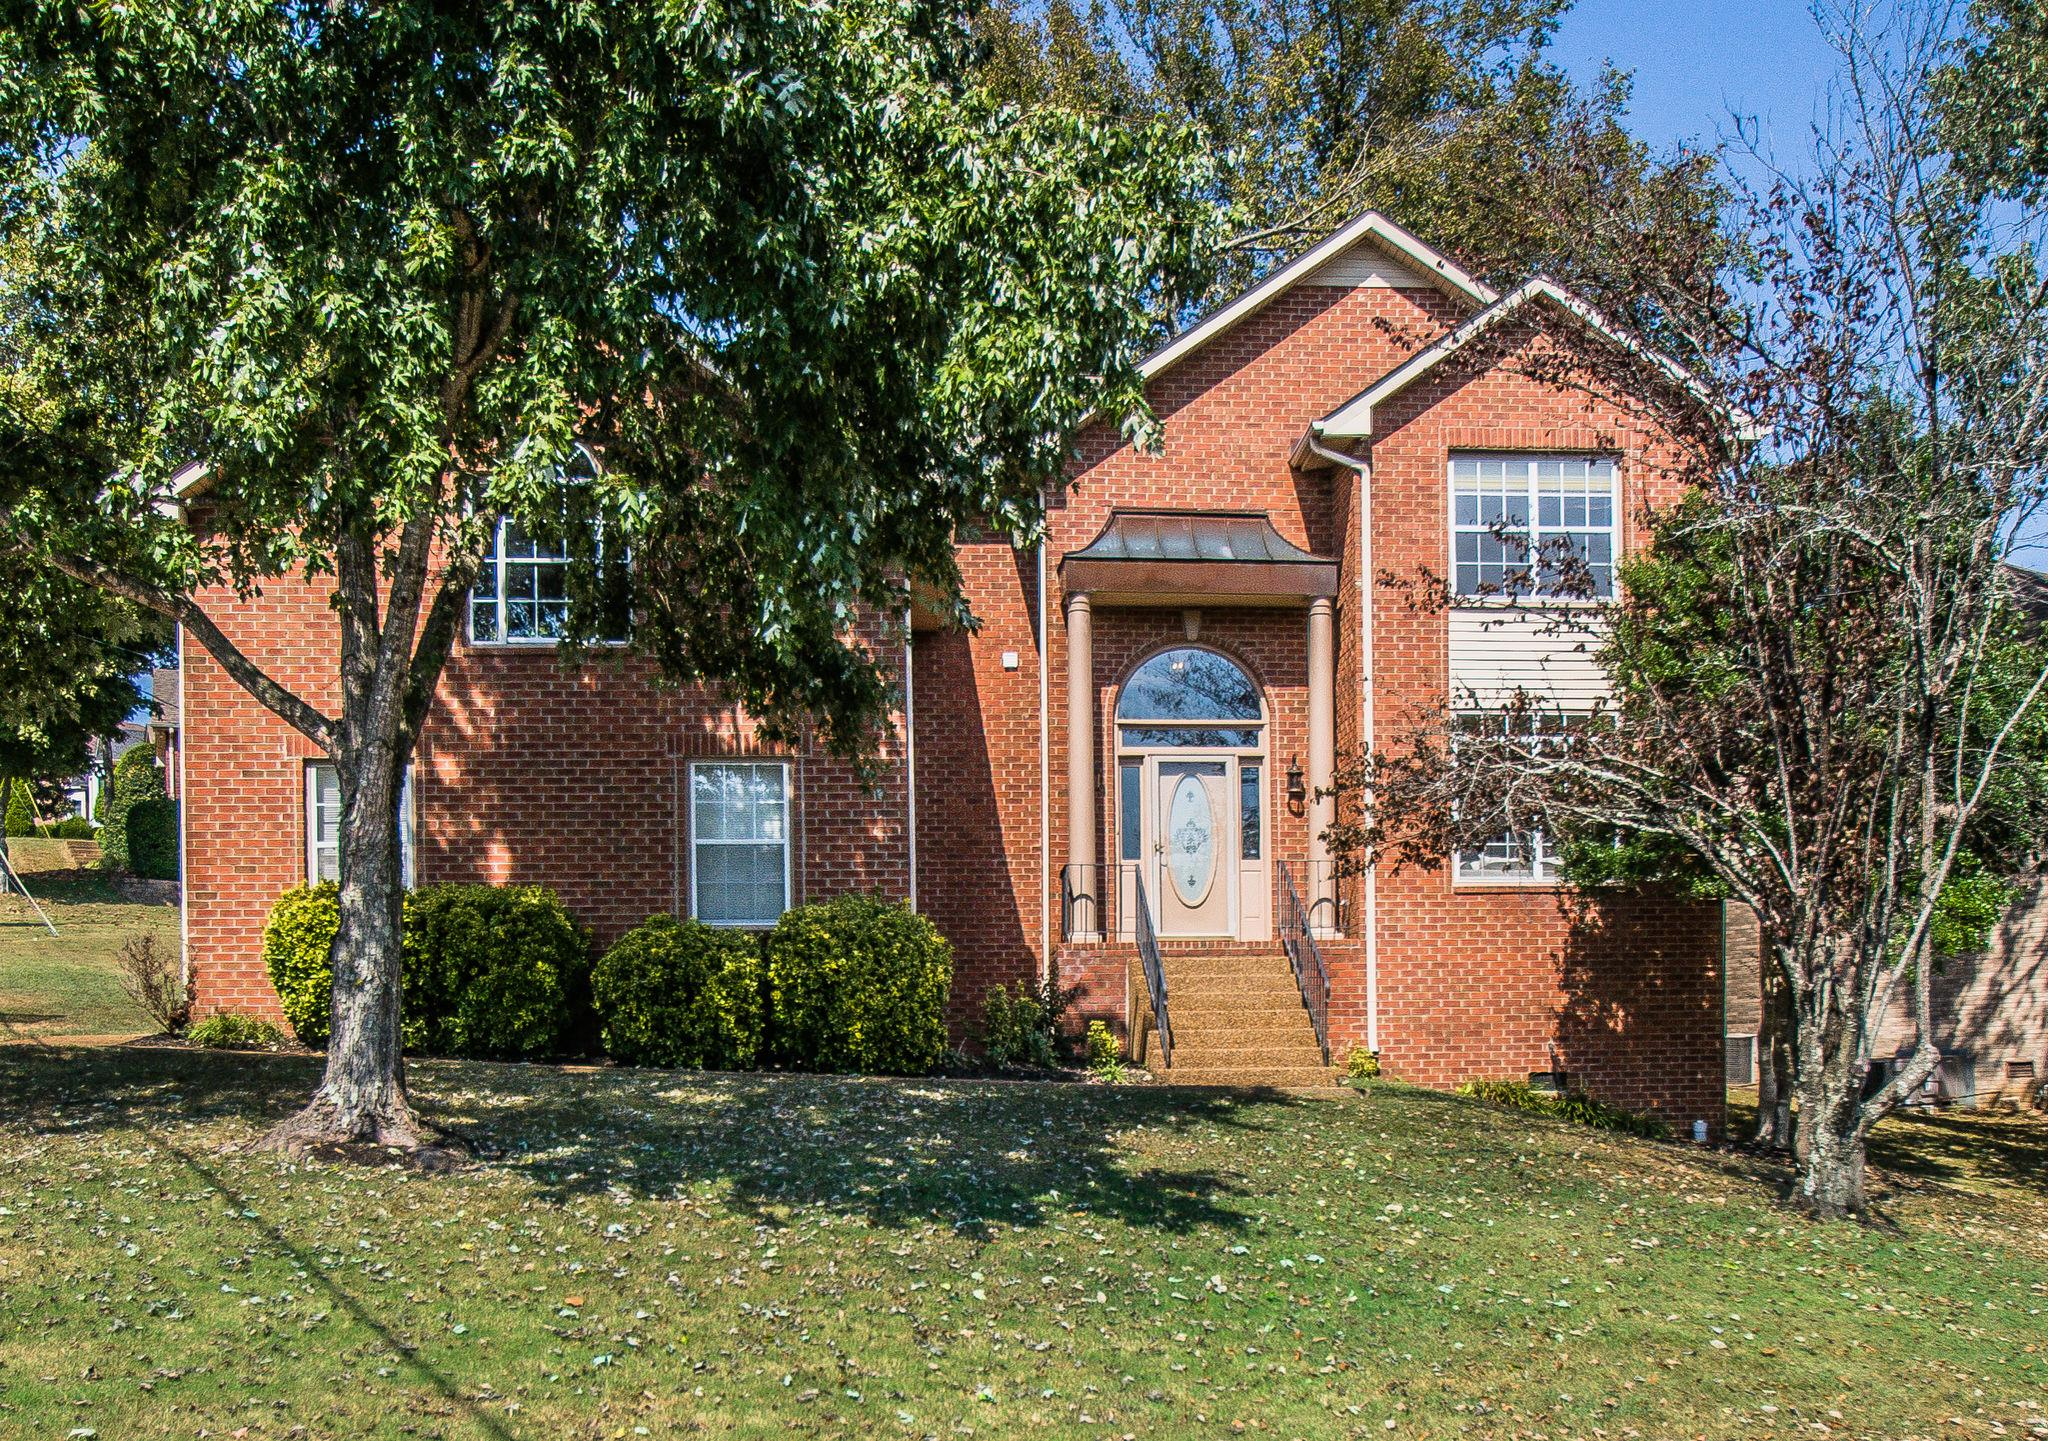 6700 Autumnwood Dr, Bellevue in Davidson County County, TN 37221 Home for Sale